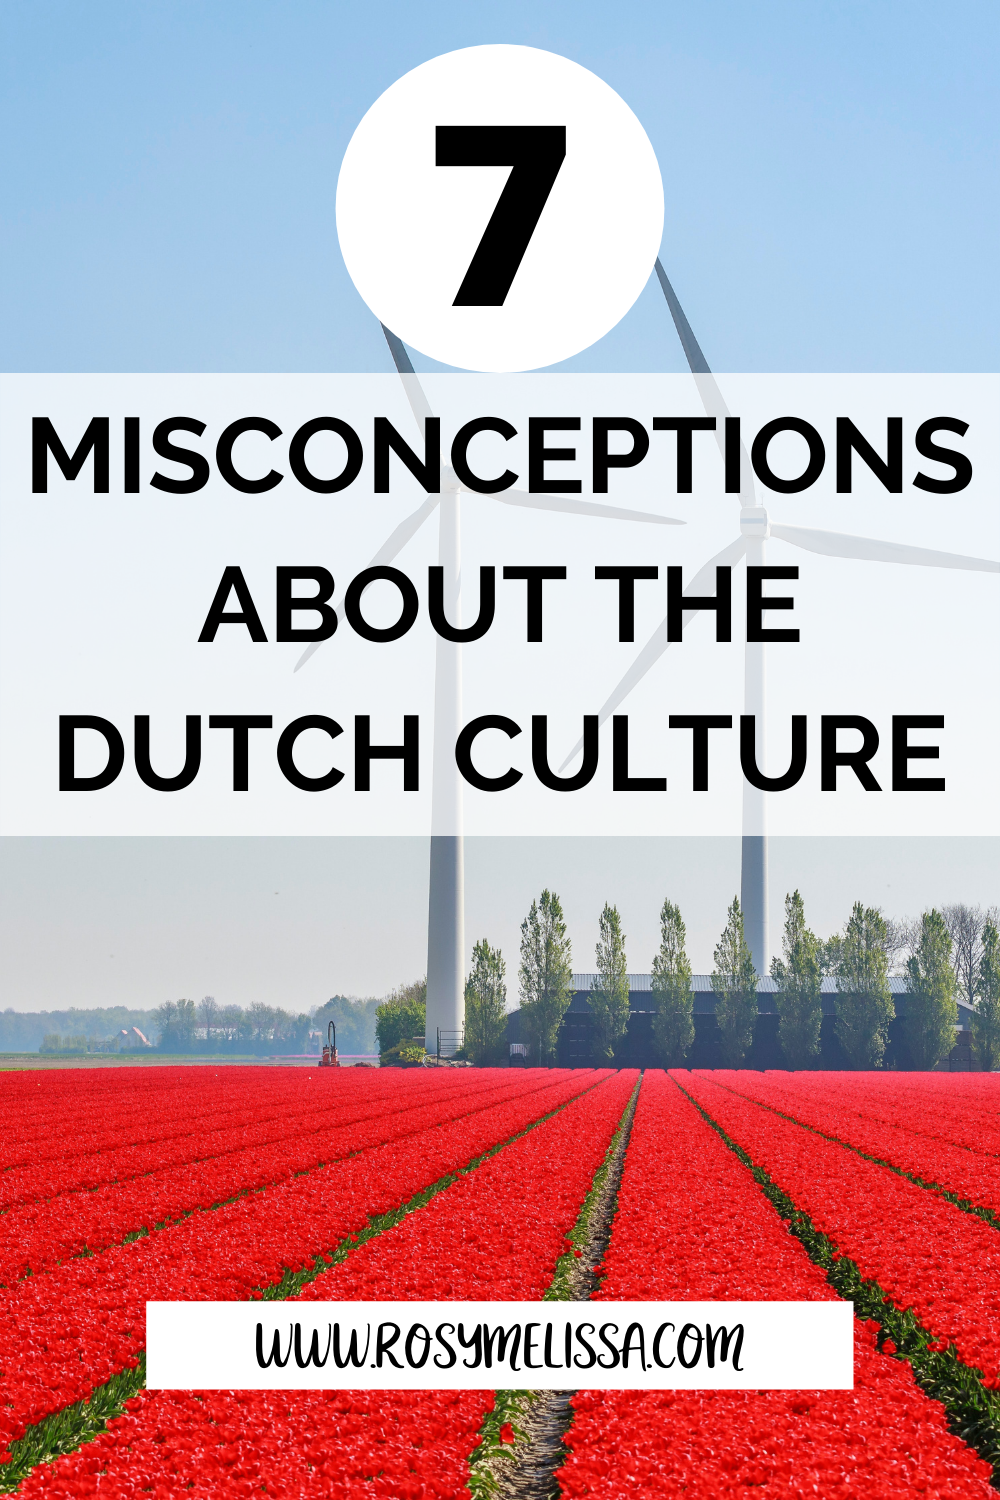 7 dutch culture facts you need to know, dutch culture misconceptions, culture talk, the netherlands